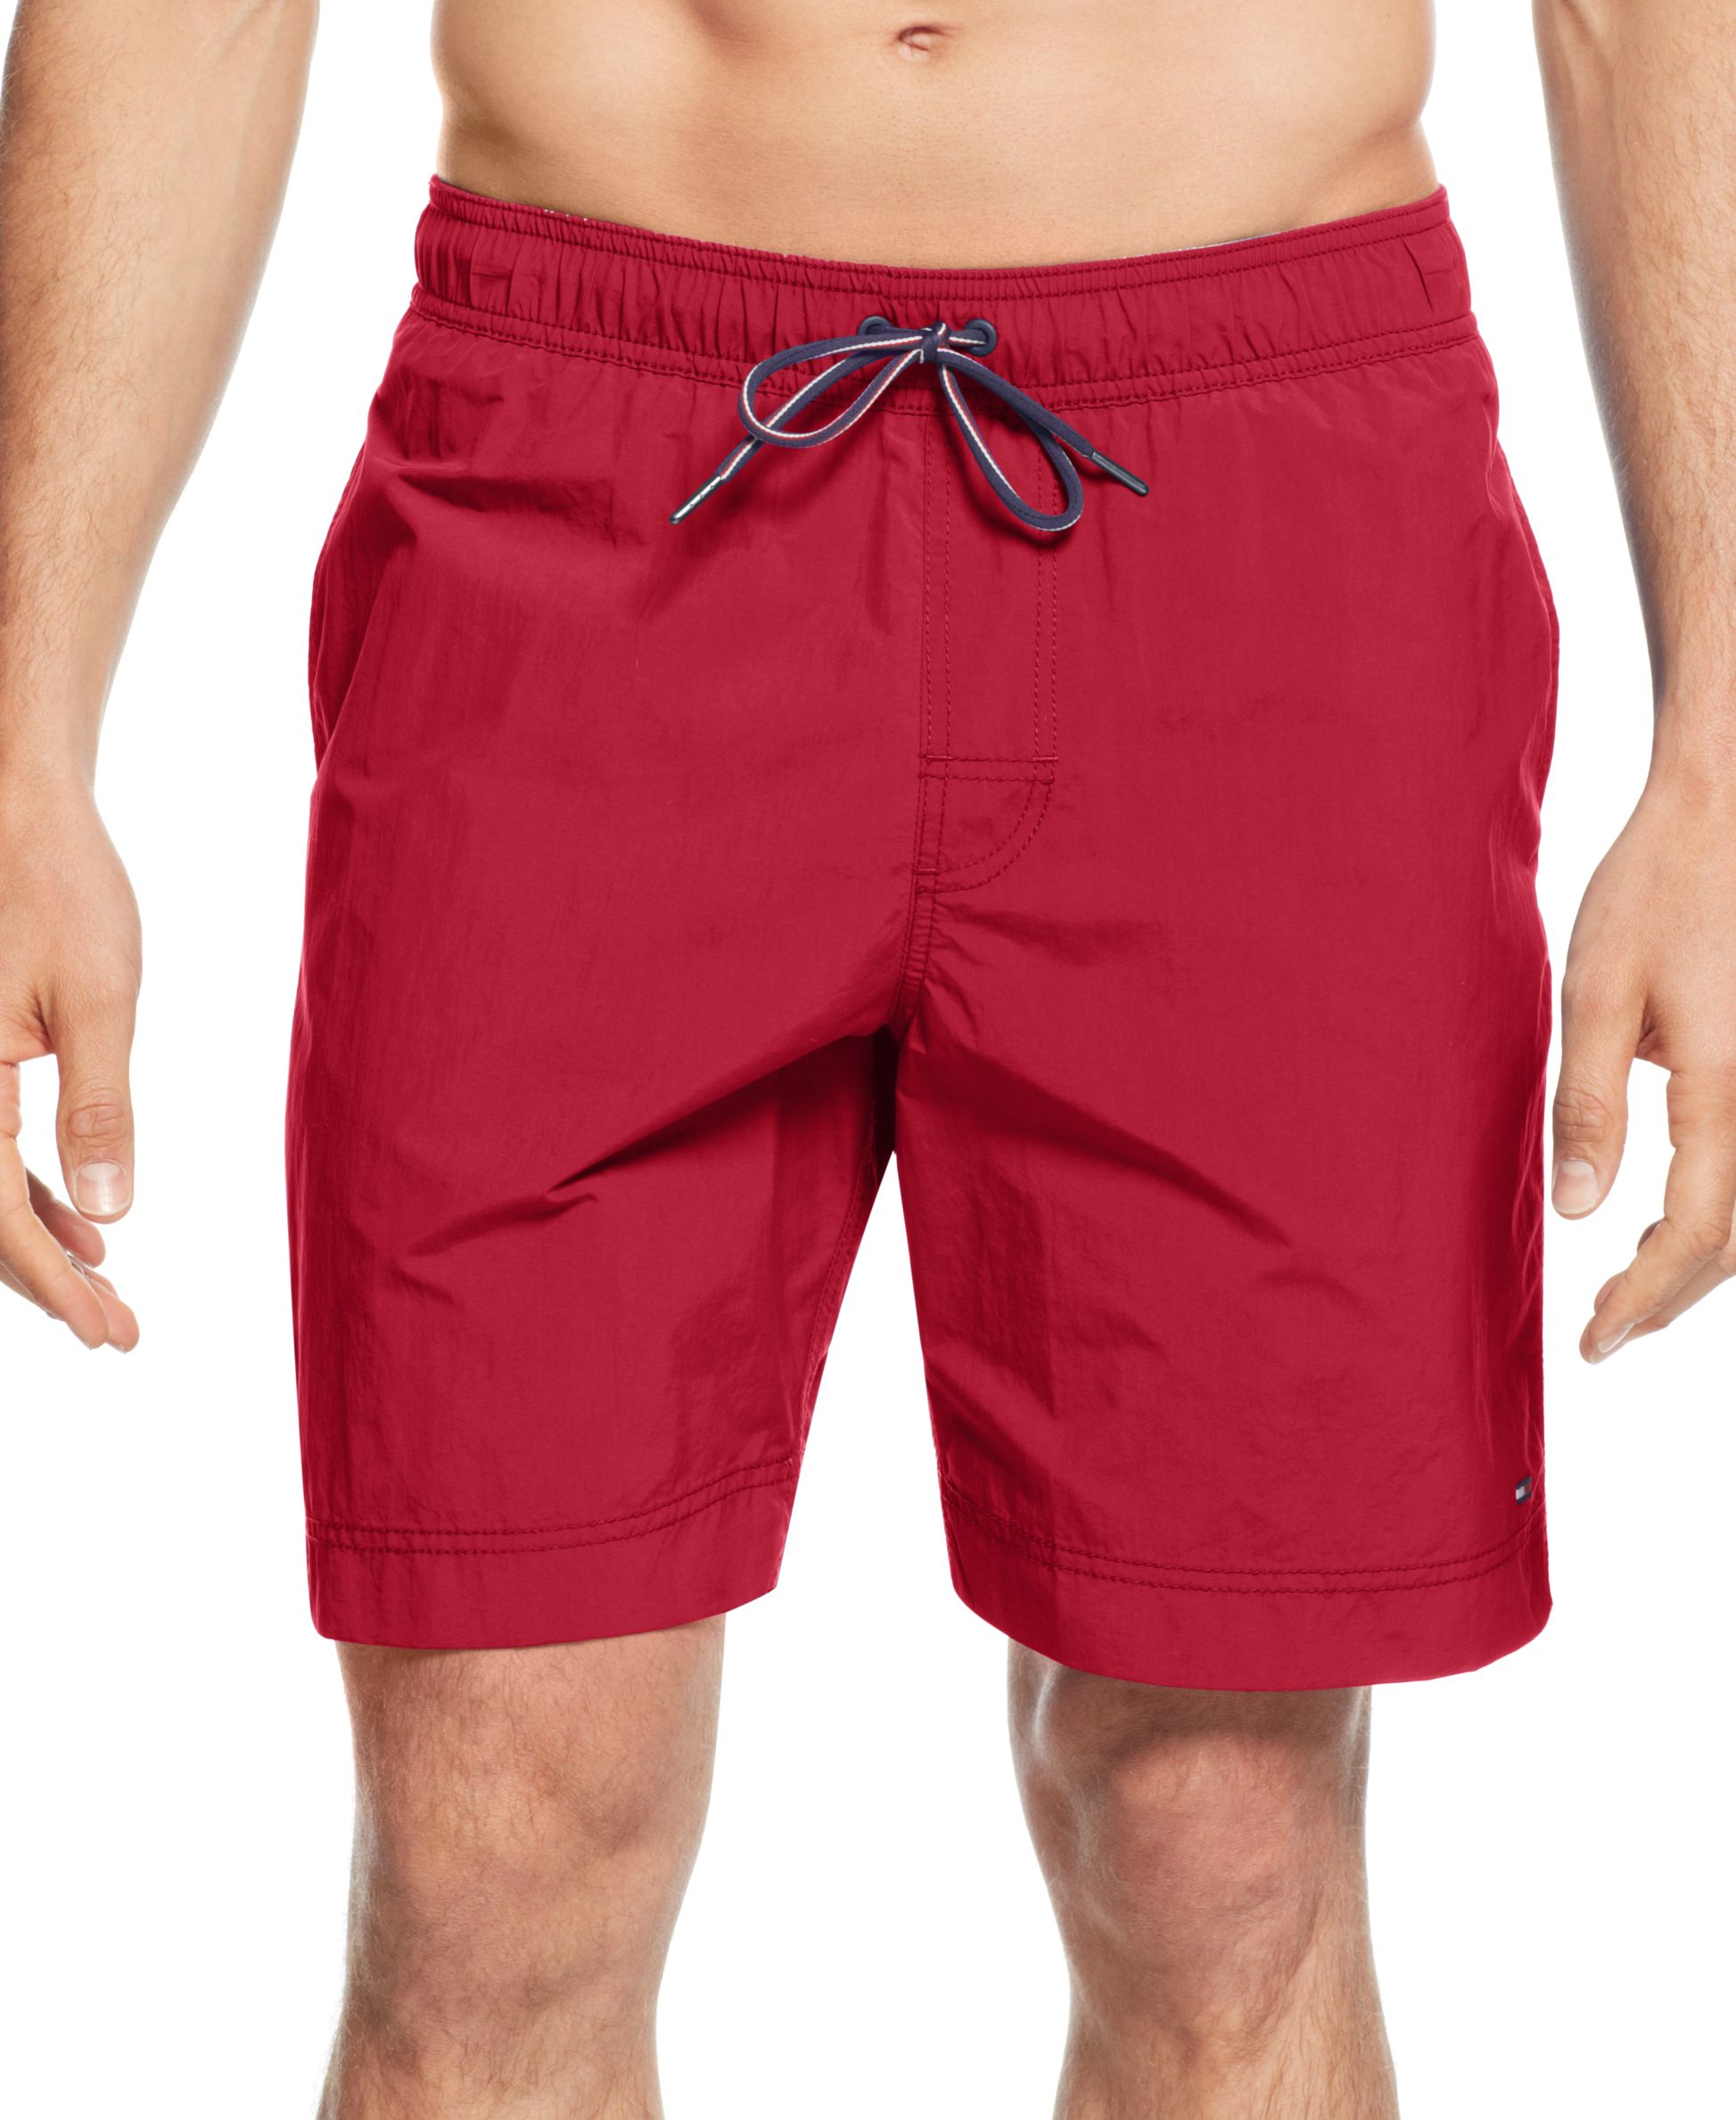 Shop Mens Bathing Suits for Big and Tall sizes at Macy's. We've got a wide selection of styles and sizes. Browse our Big and Tall Swim Department today!